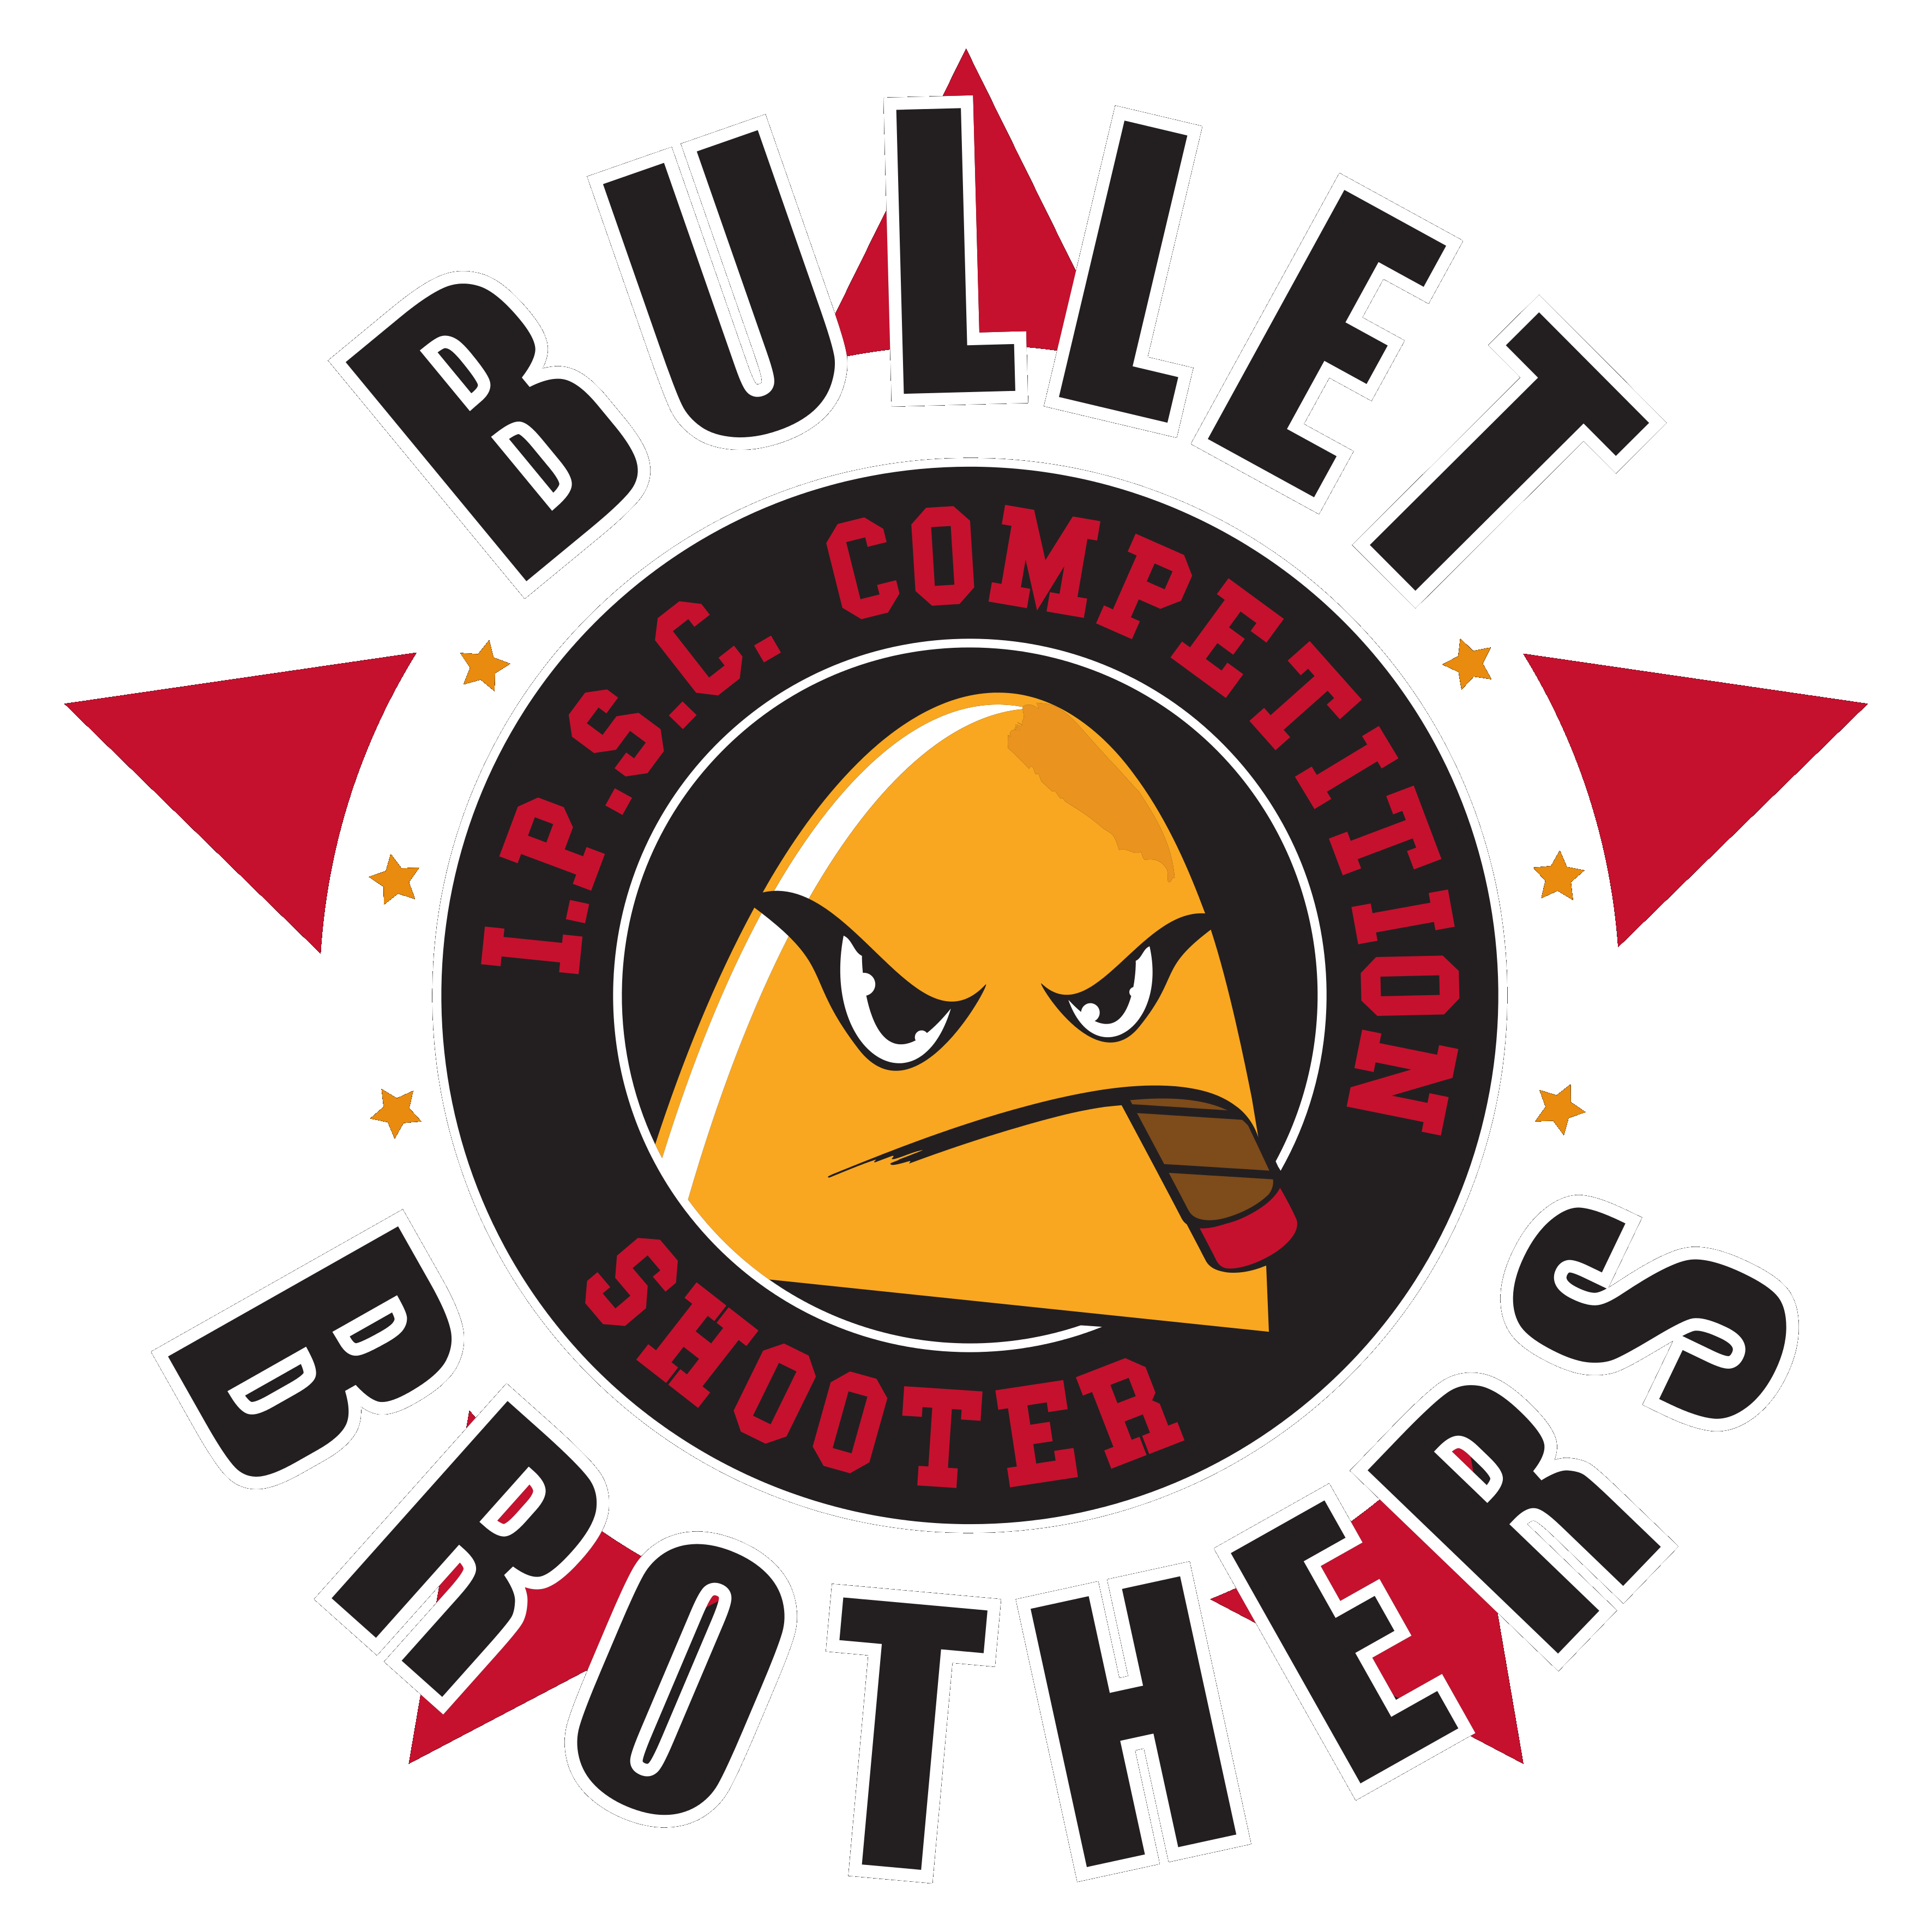 Bullet Brothers